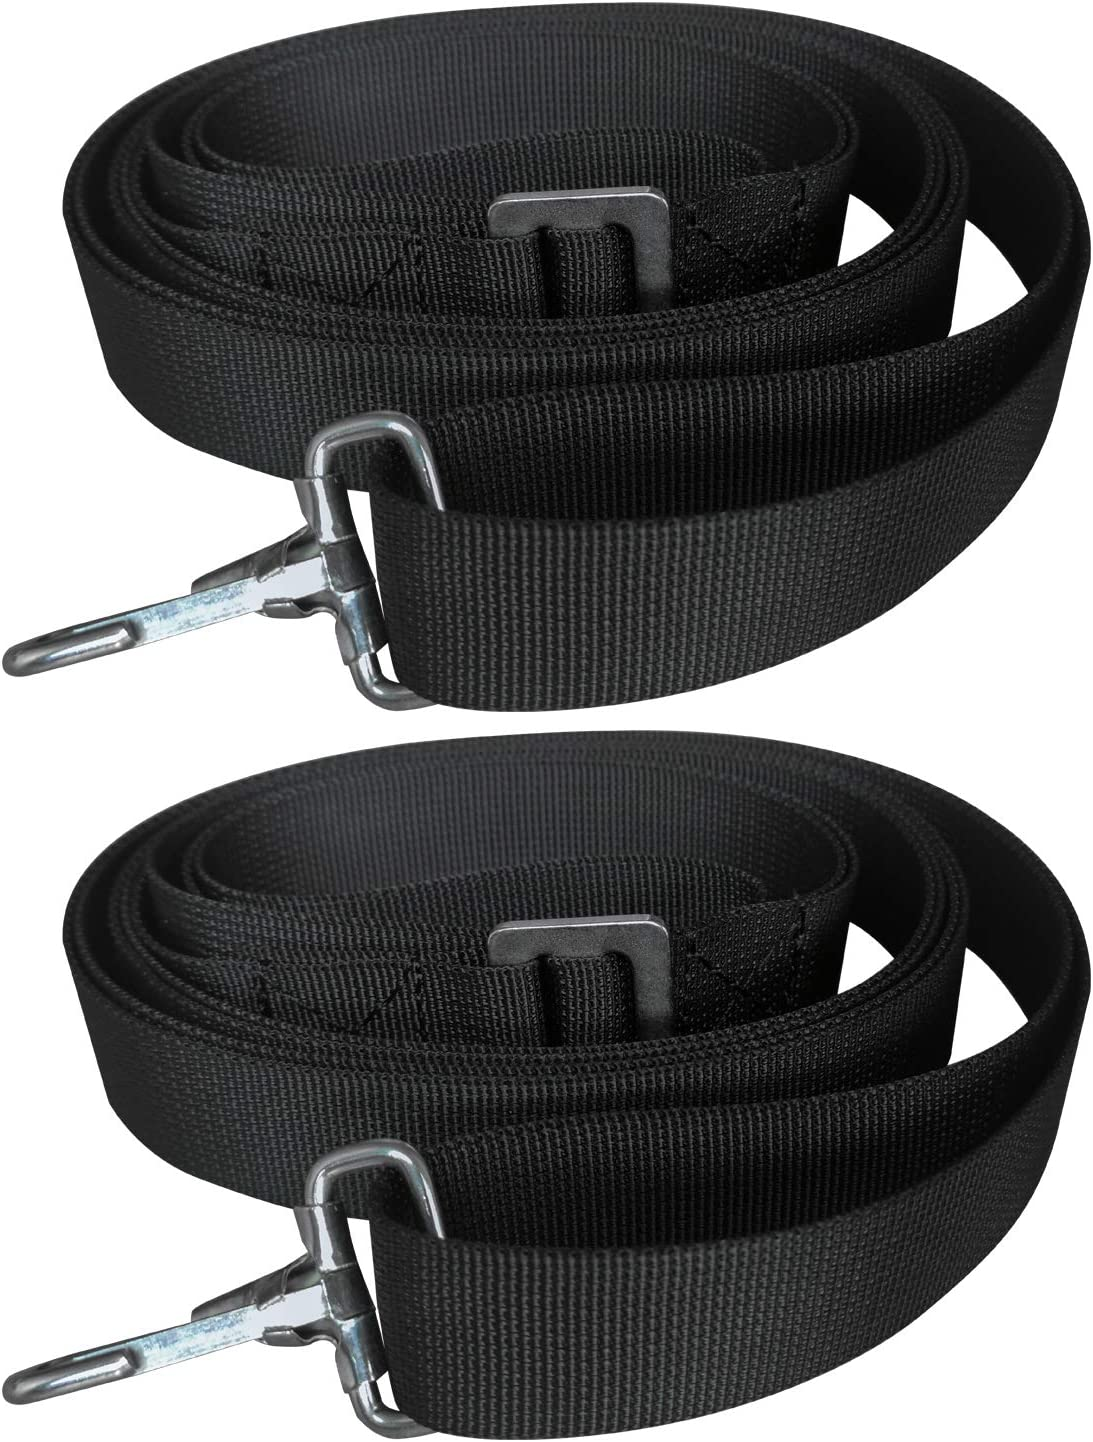 28~60 Stainless Steel Boat Vtete 2 PCS Adjustable Bimini Boat Awning Hardware Top Straps with Loops and Single Snap Hook